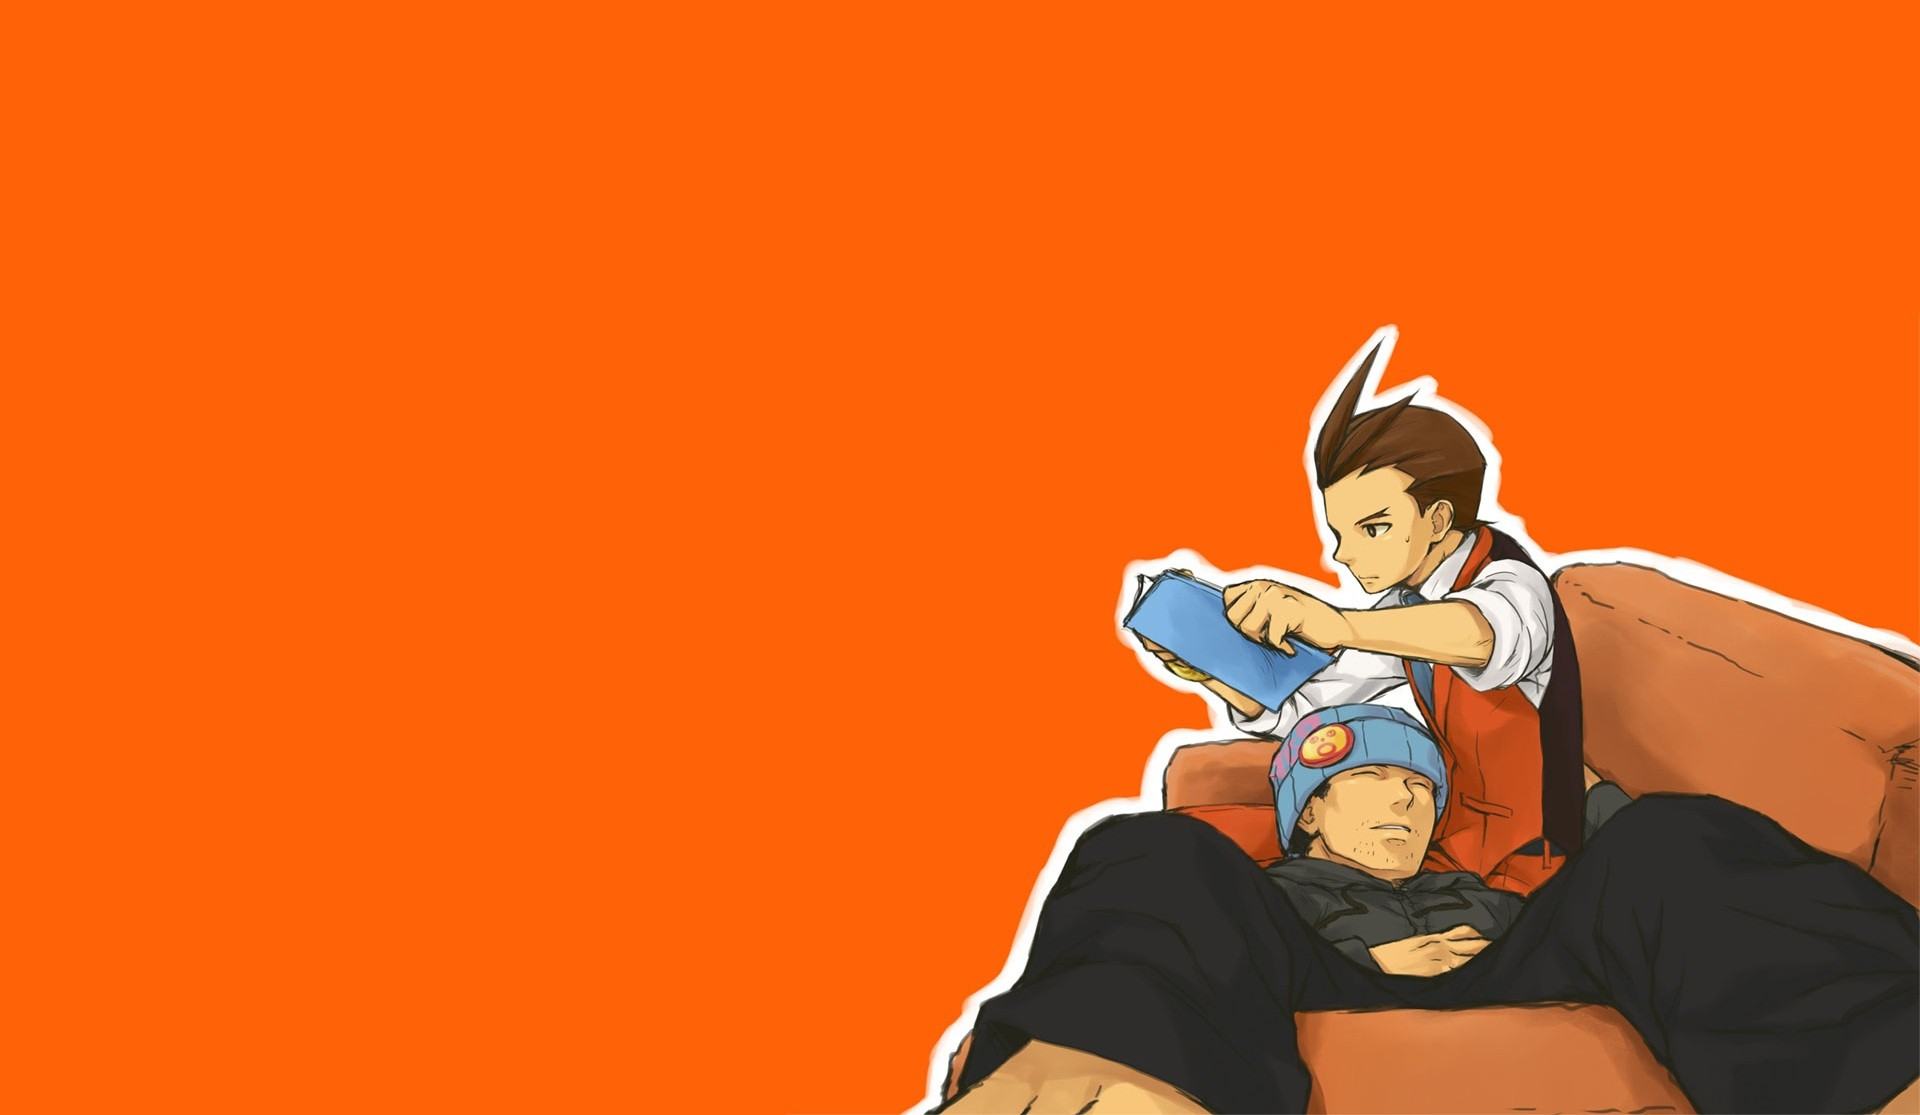 Phoenix Wright Ace Attorney Full HD Wallpaper And Background Image